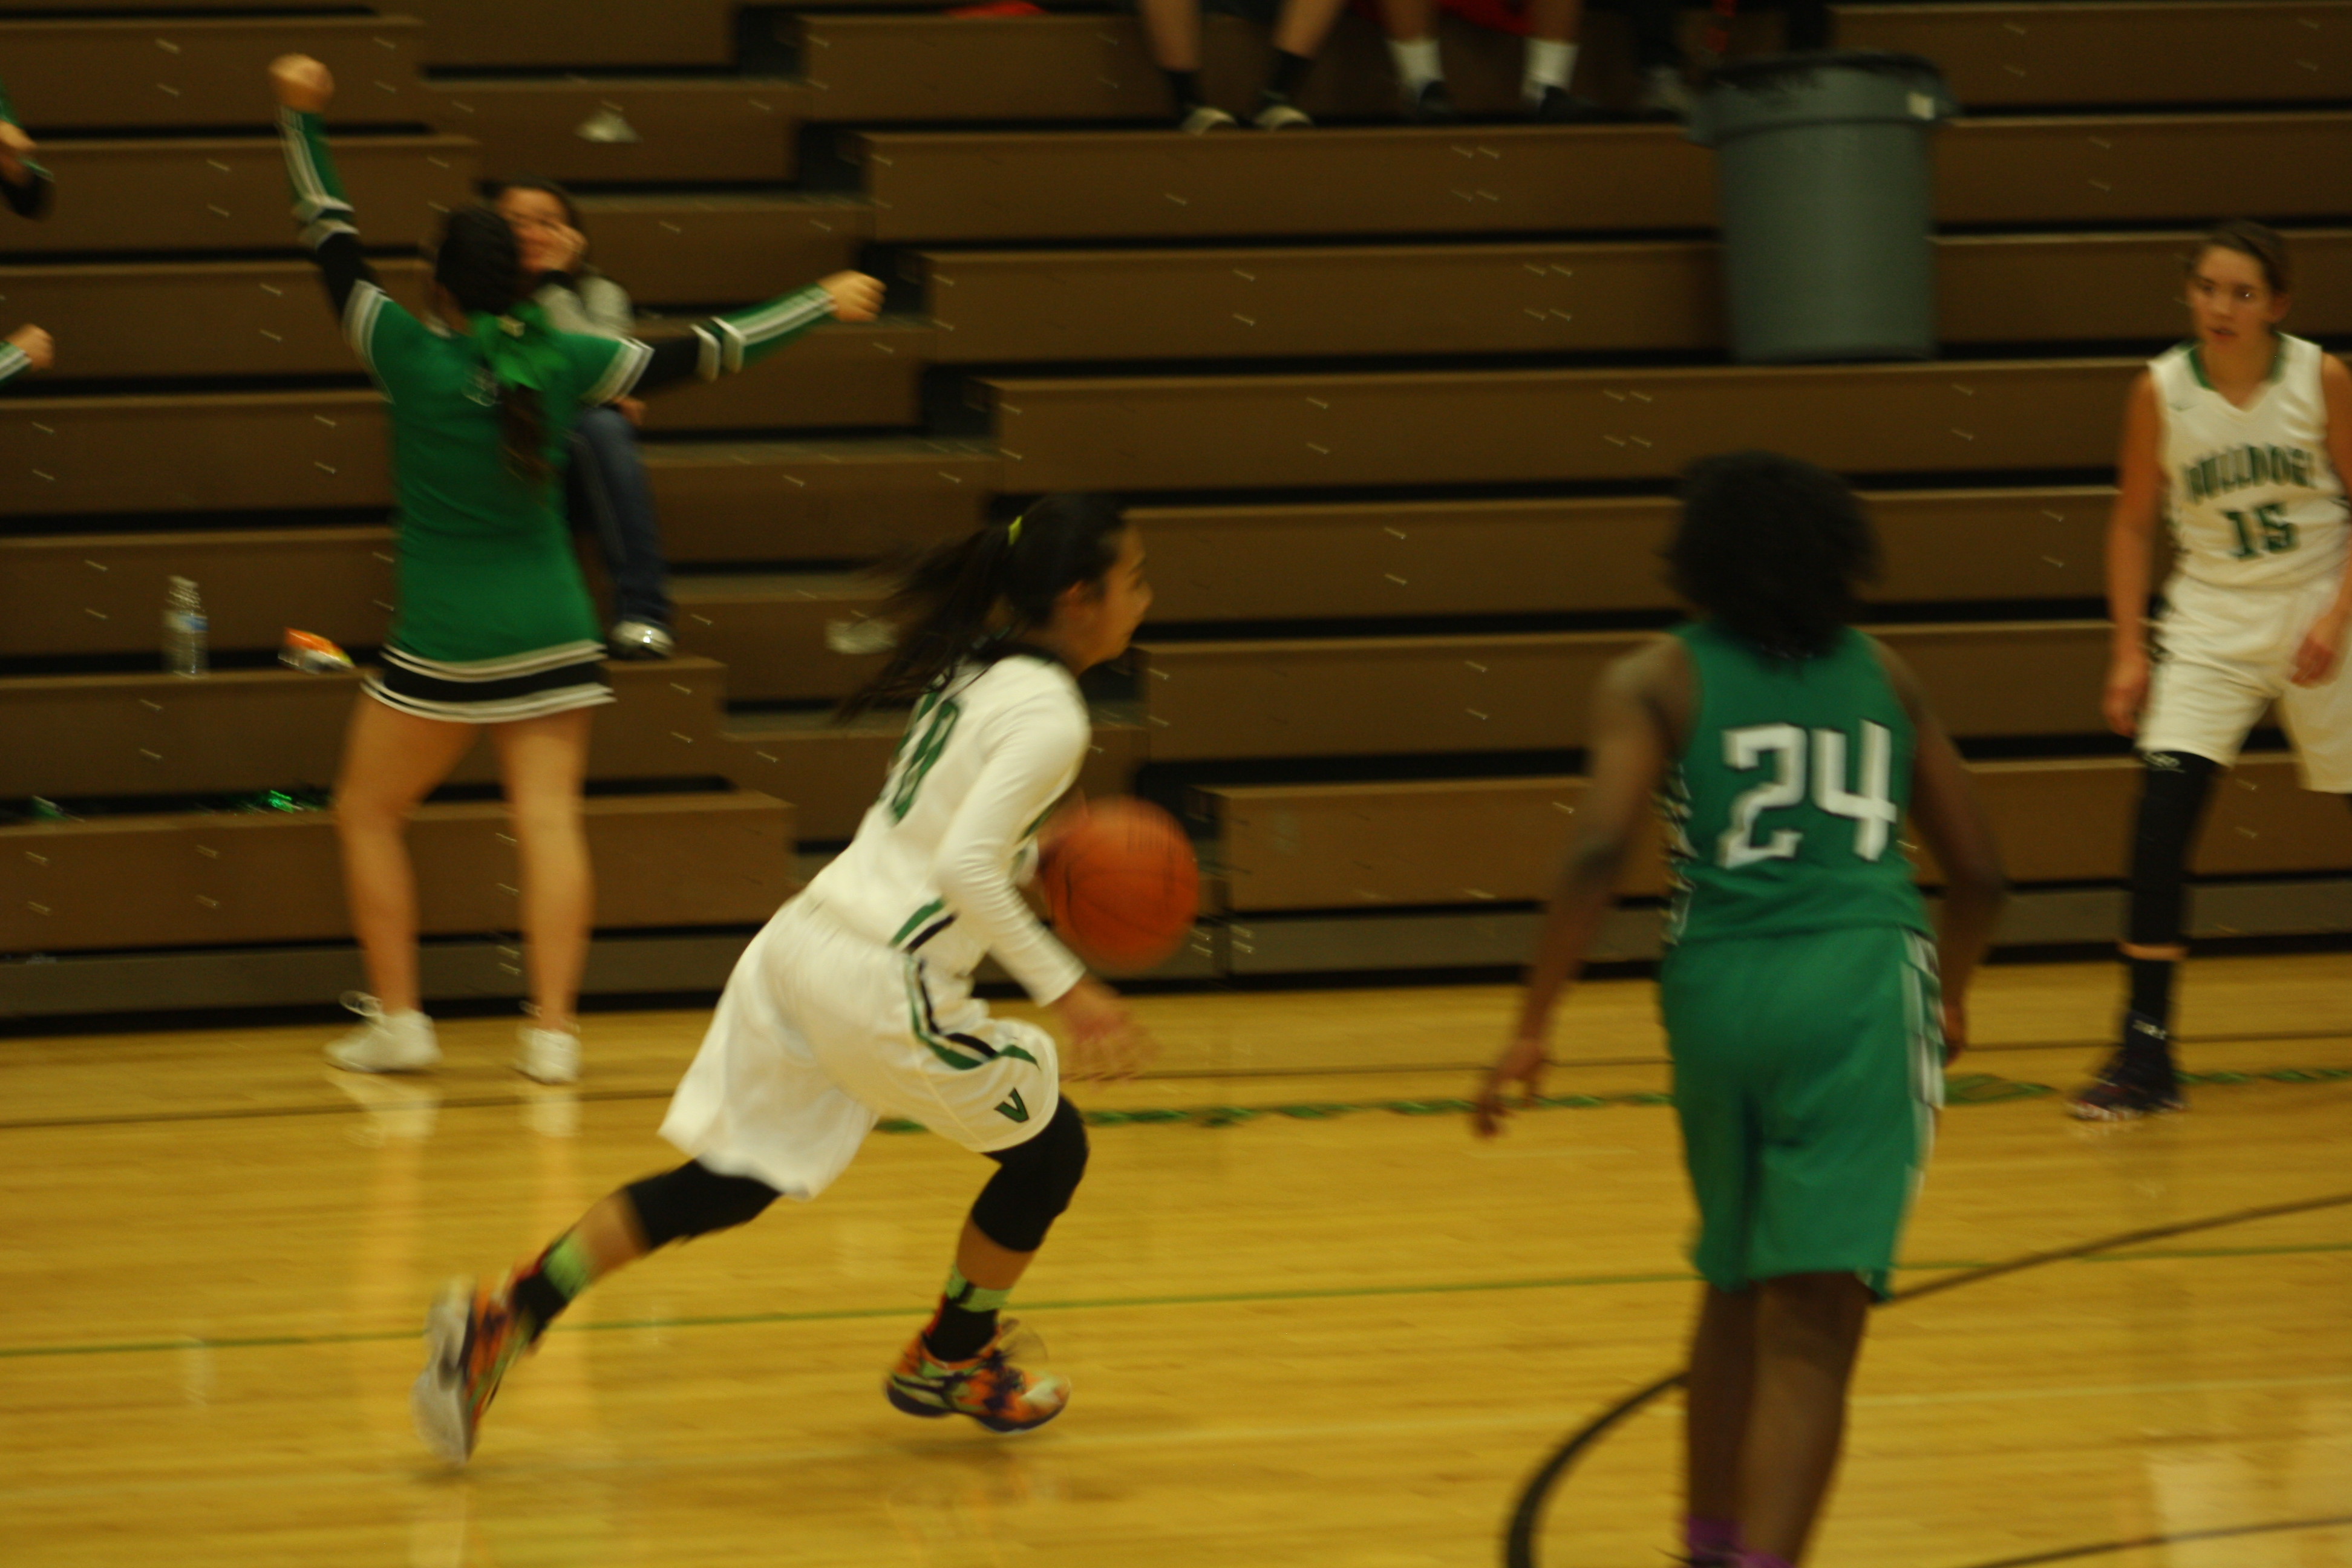 Lady Dawgs open season with 46-37 win over Rams